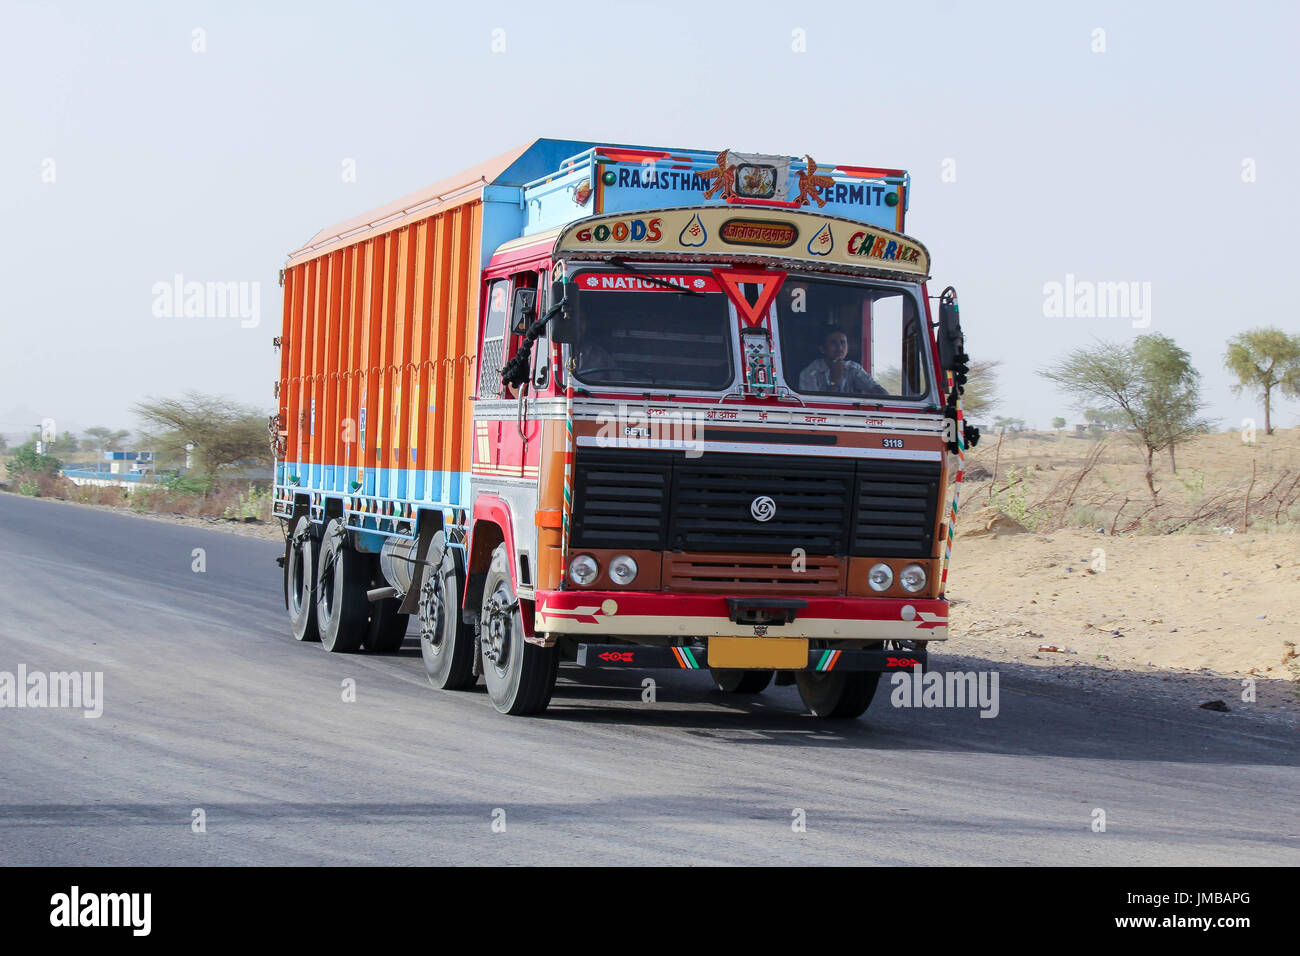 Rajasthan Truck - Indian Truck - Stock Image